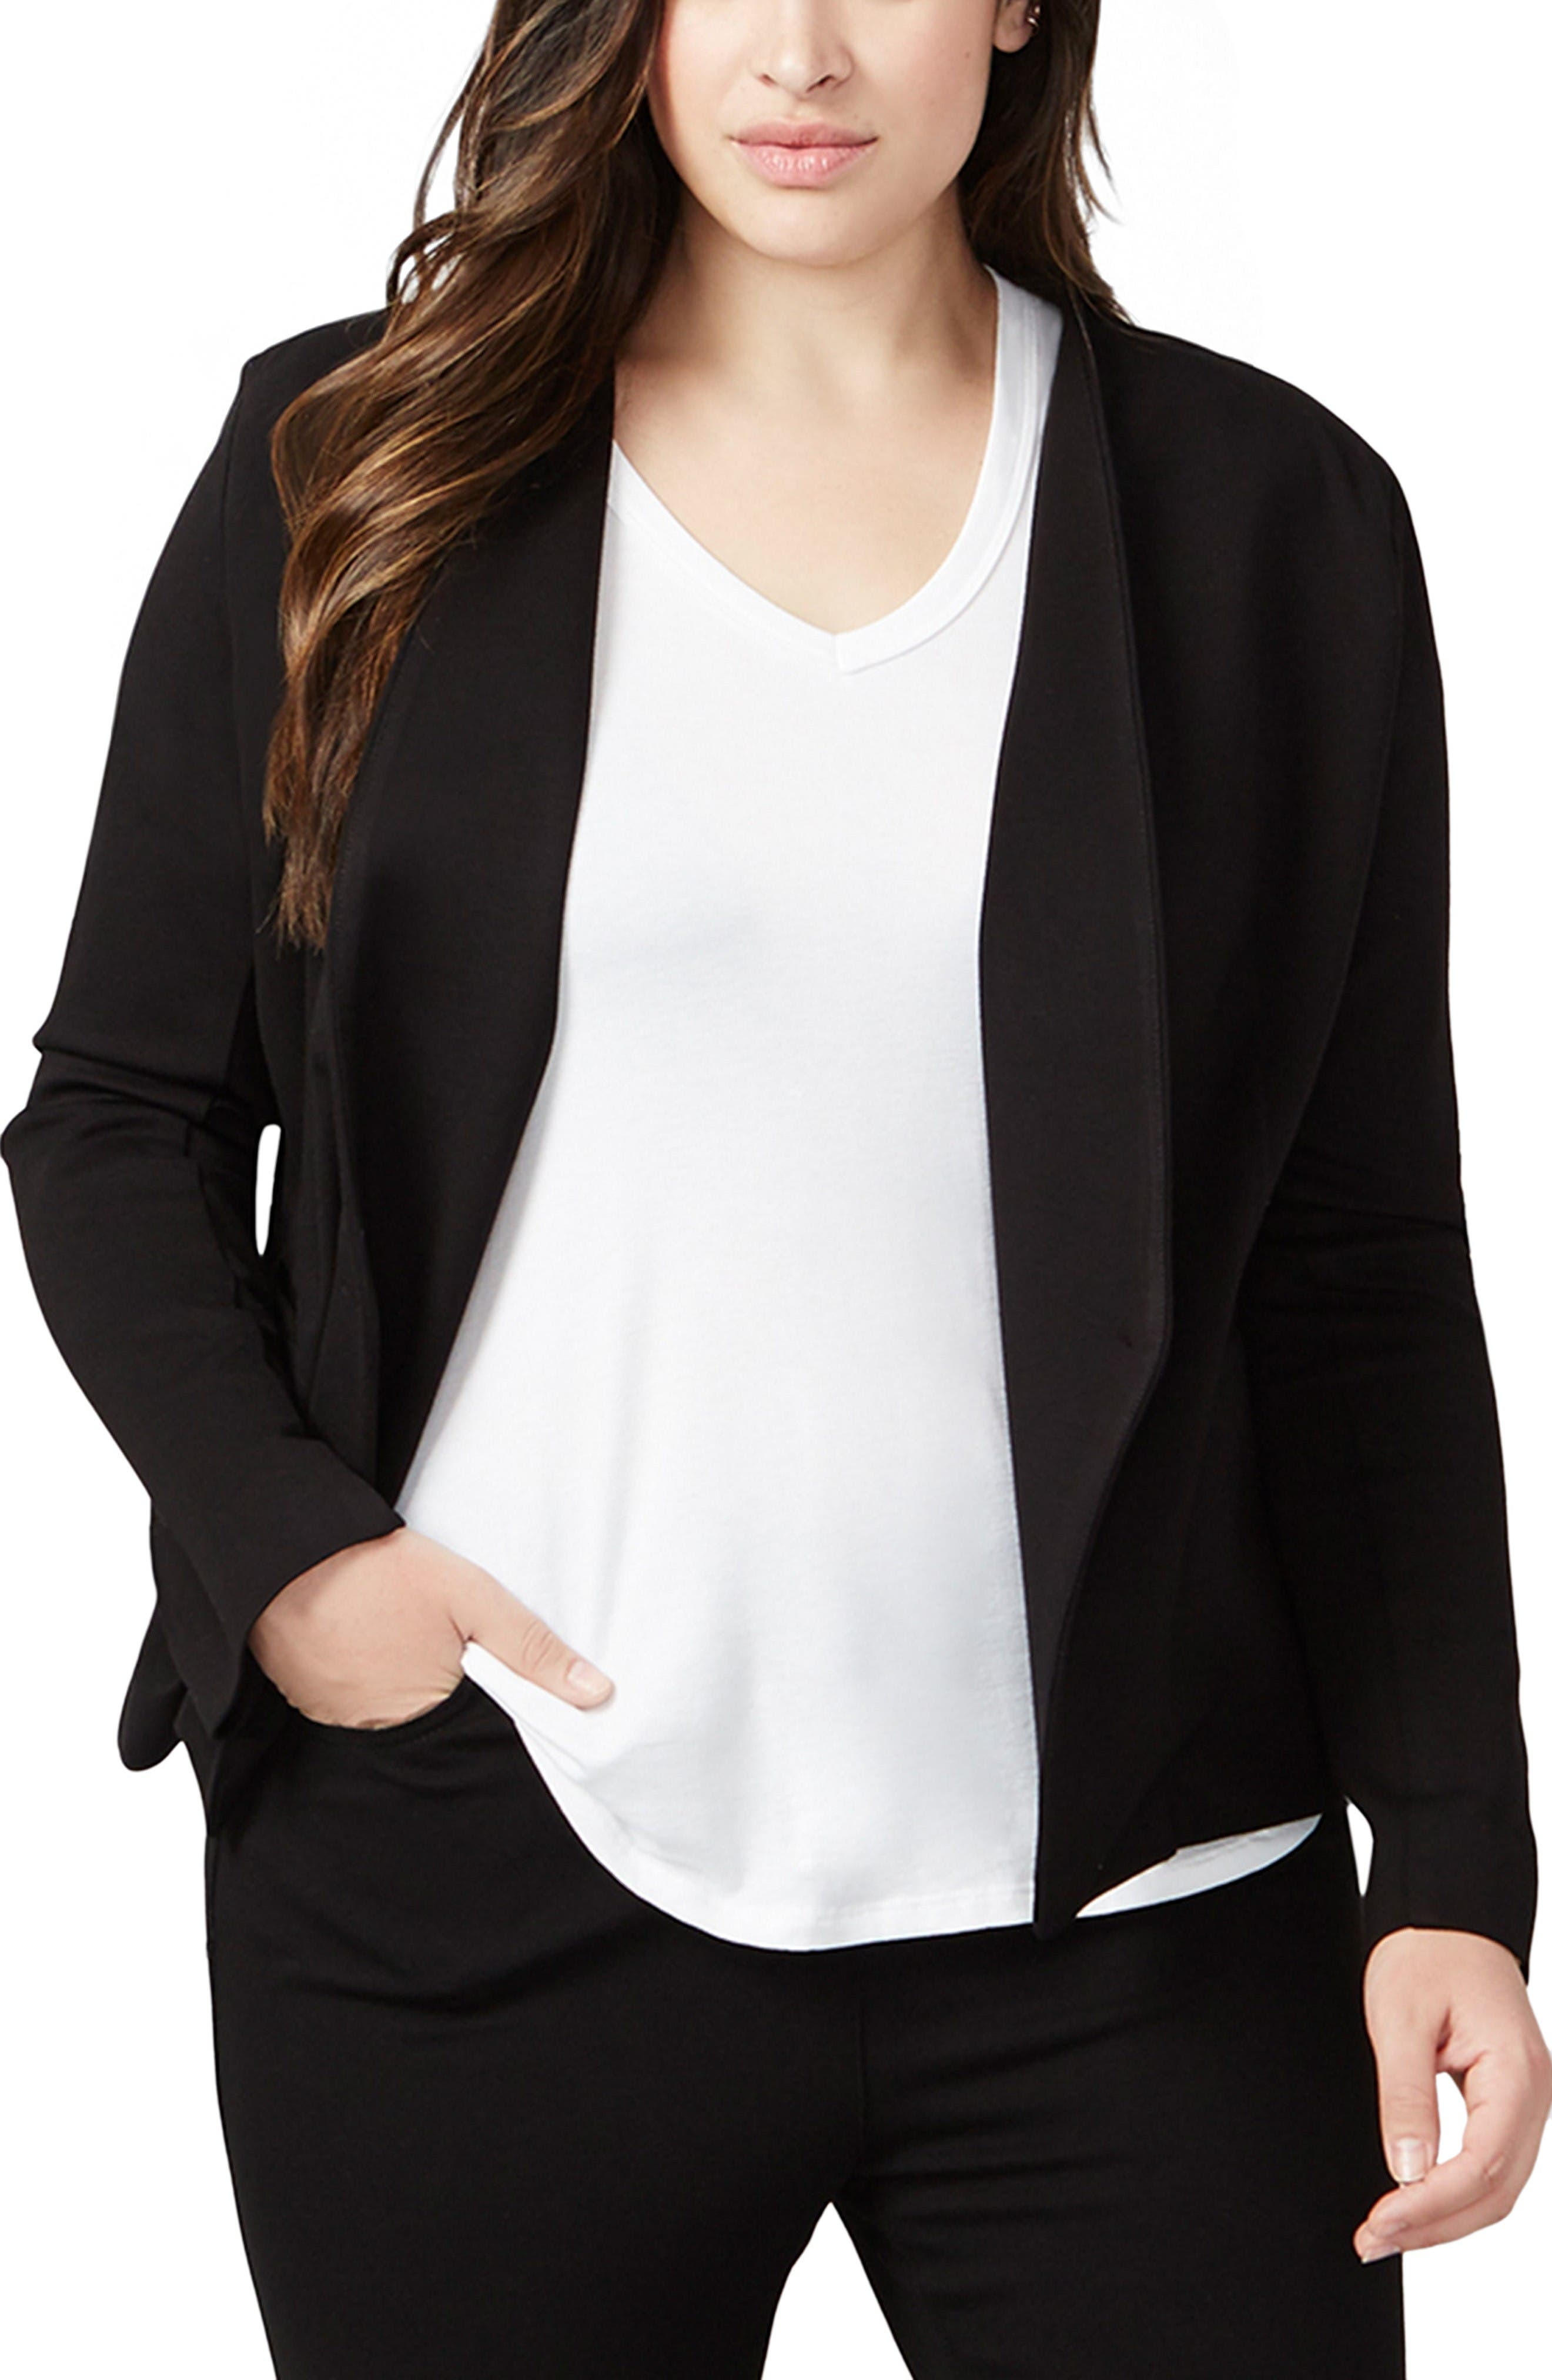 Main Image - RACHEL Rachel Roy Ponte Knit Jacket (Plus Size)